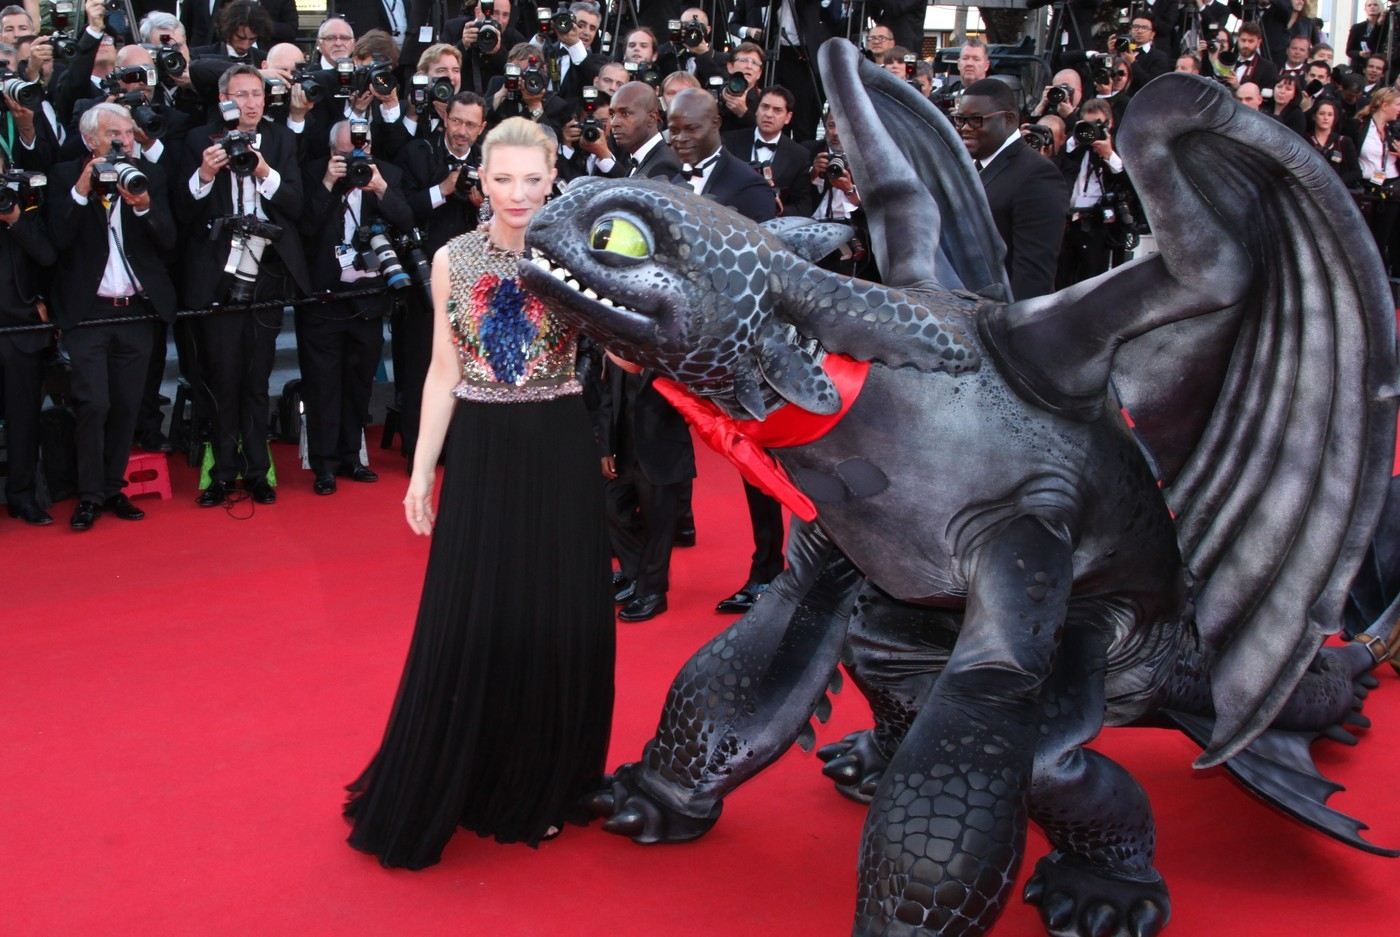 How To Train Your Dragon premiere at the 67th Cannes Film Festival 2014.